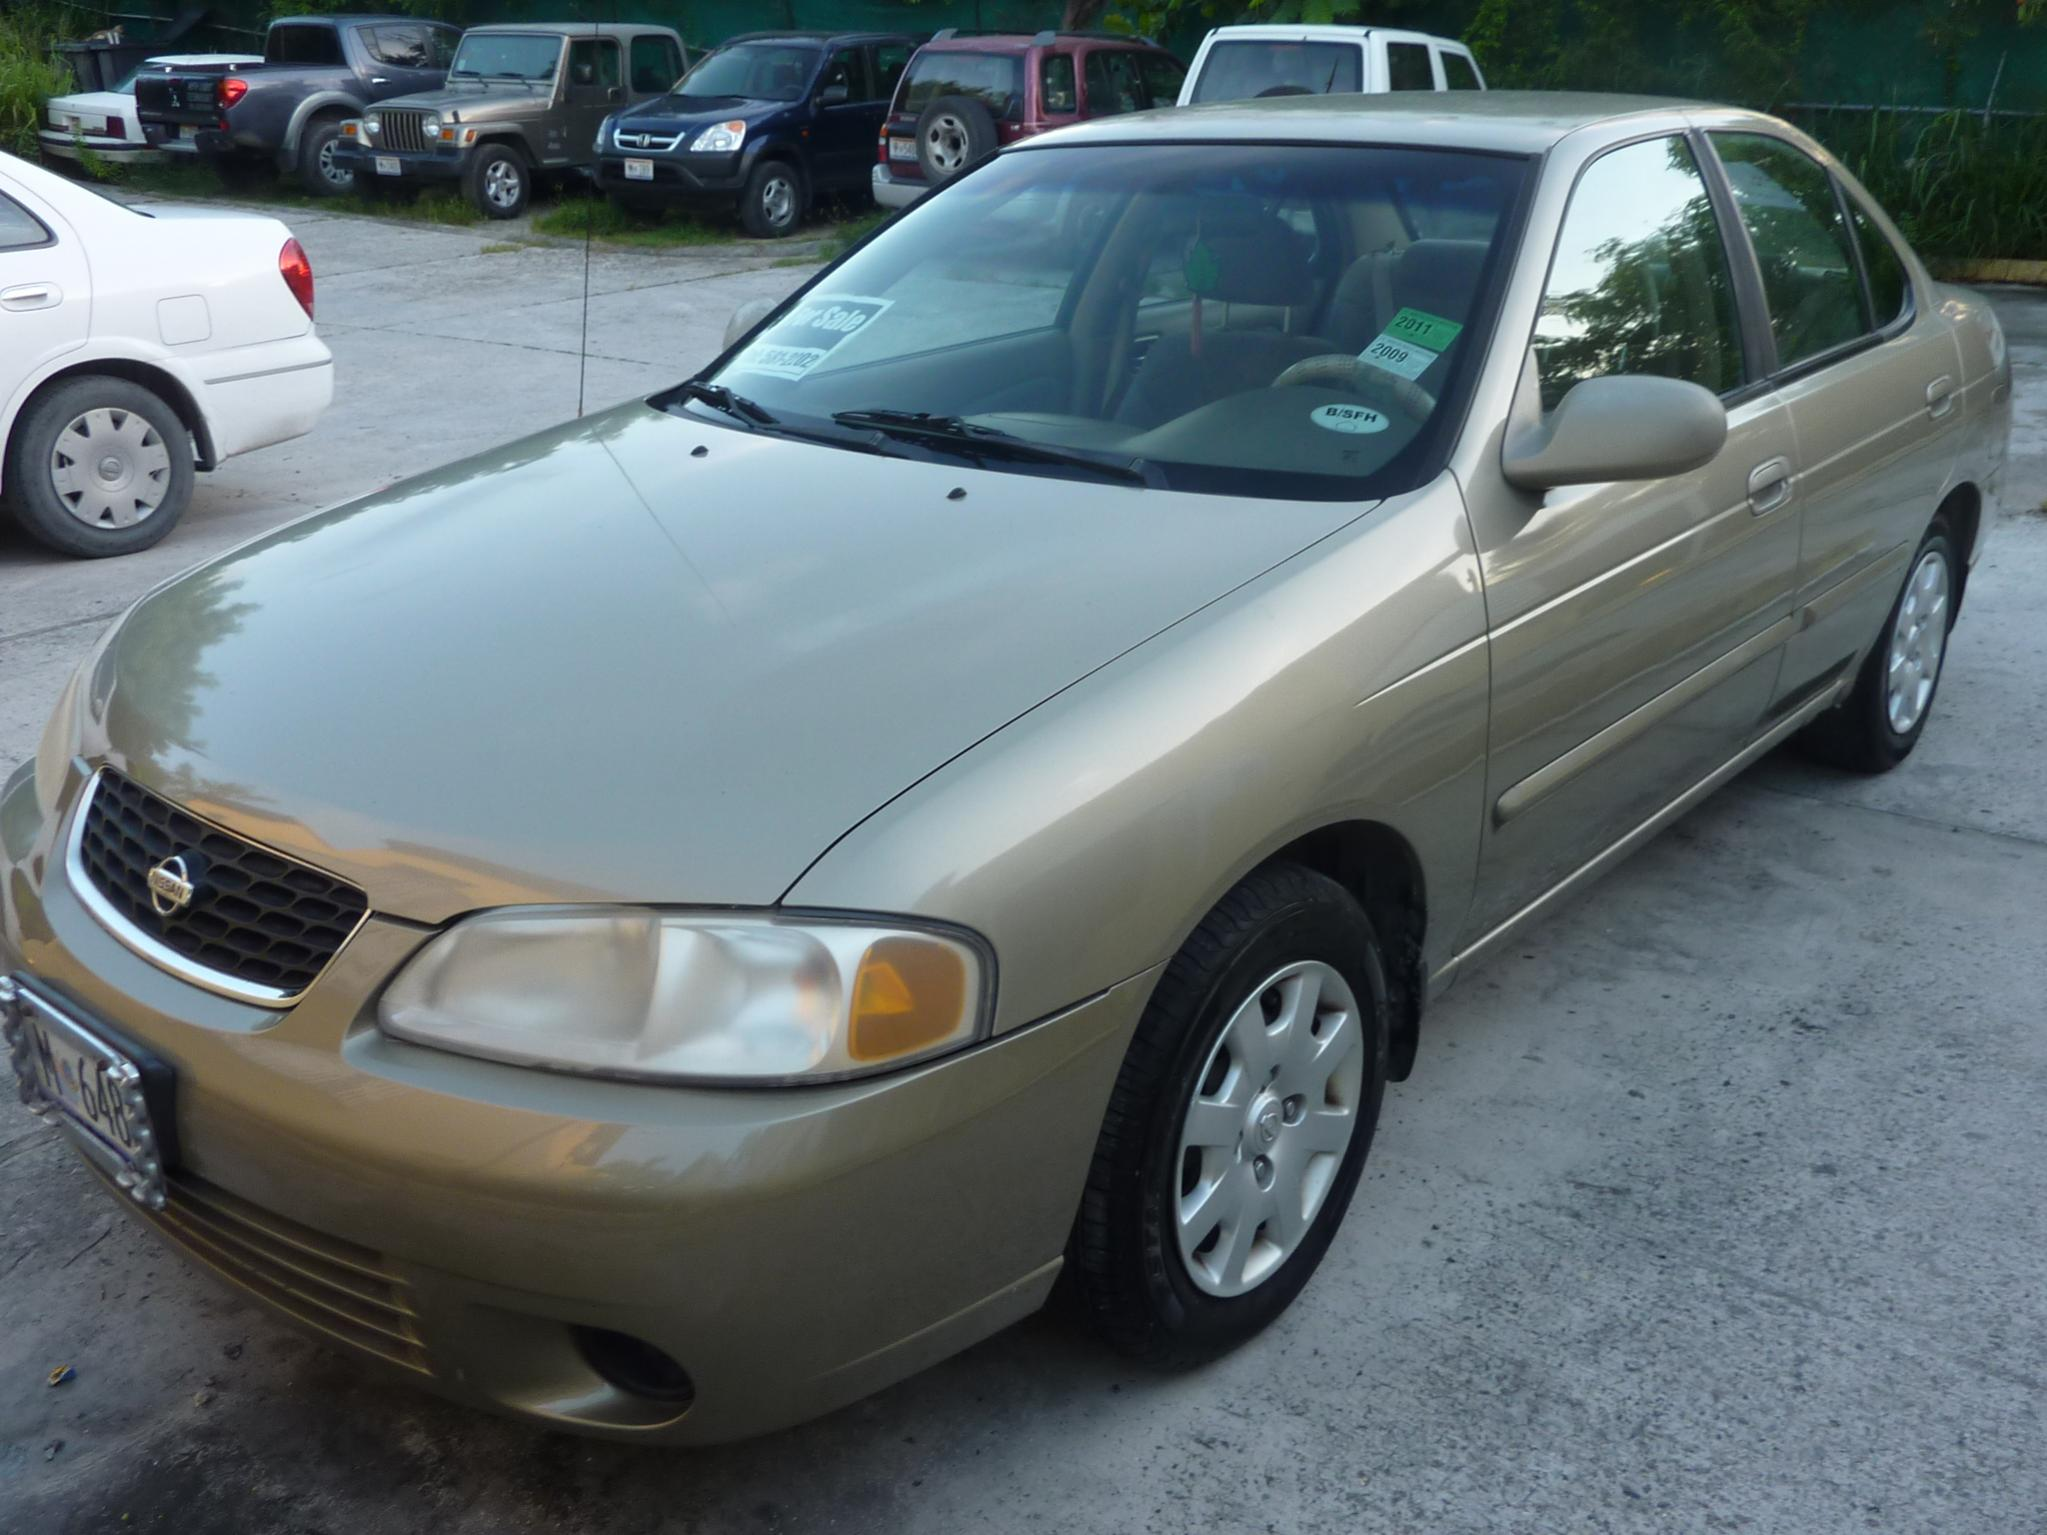 Nissan Sentra 2001 For Sale Very Good Condition